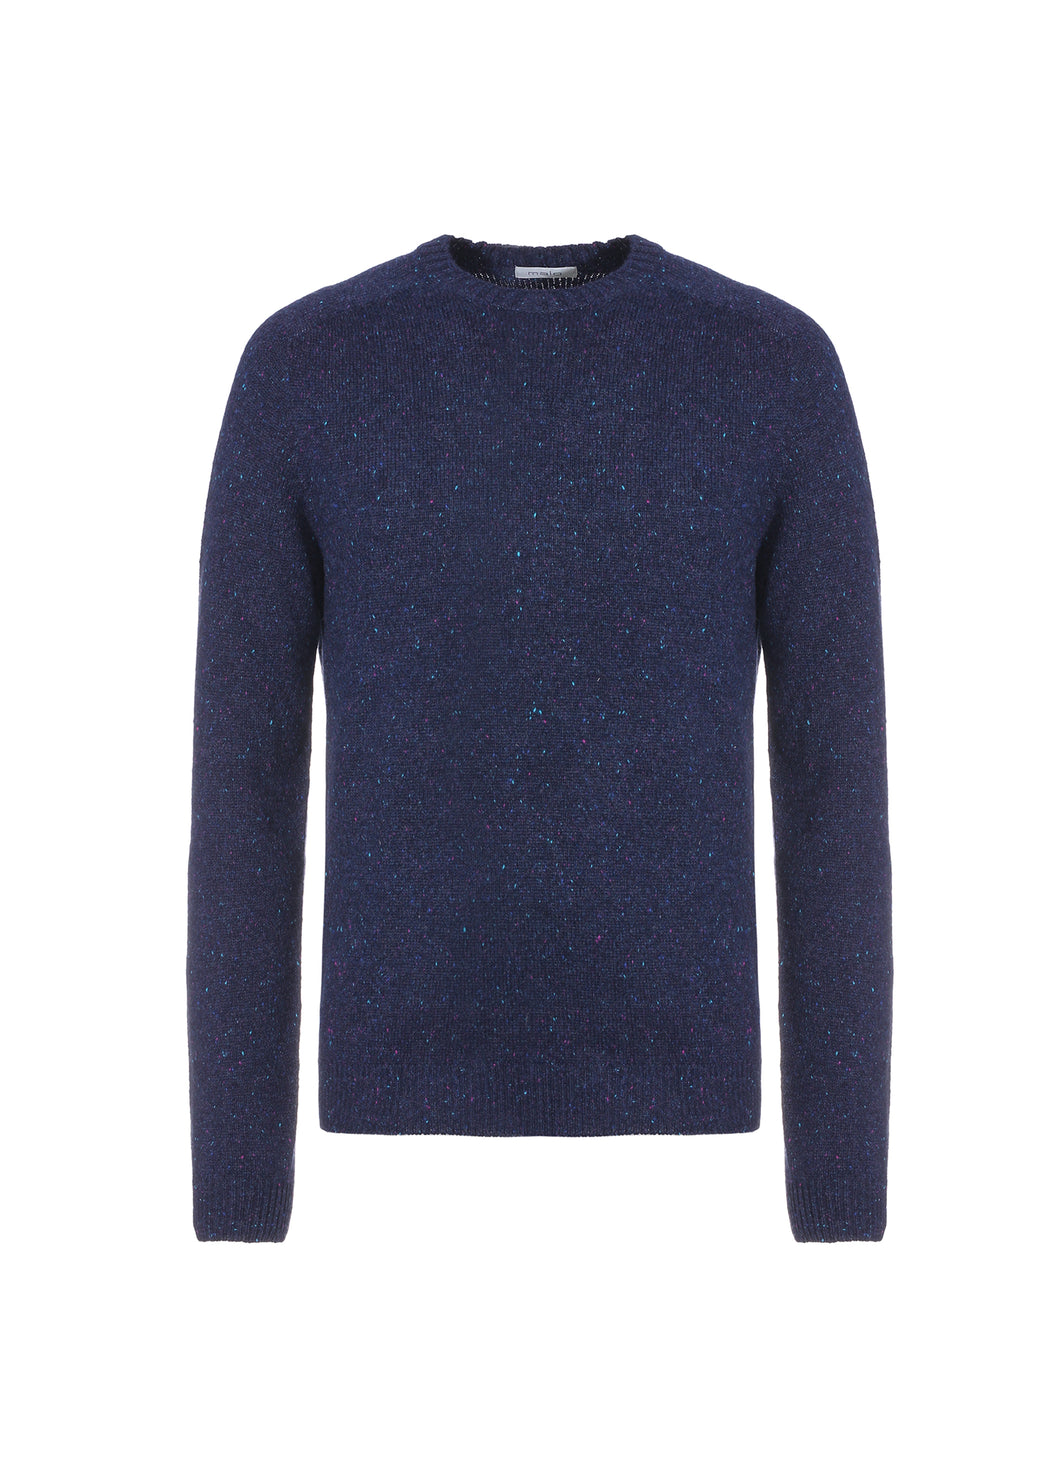 Girocollo in cashmere tweed